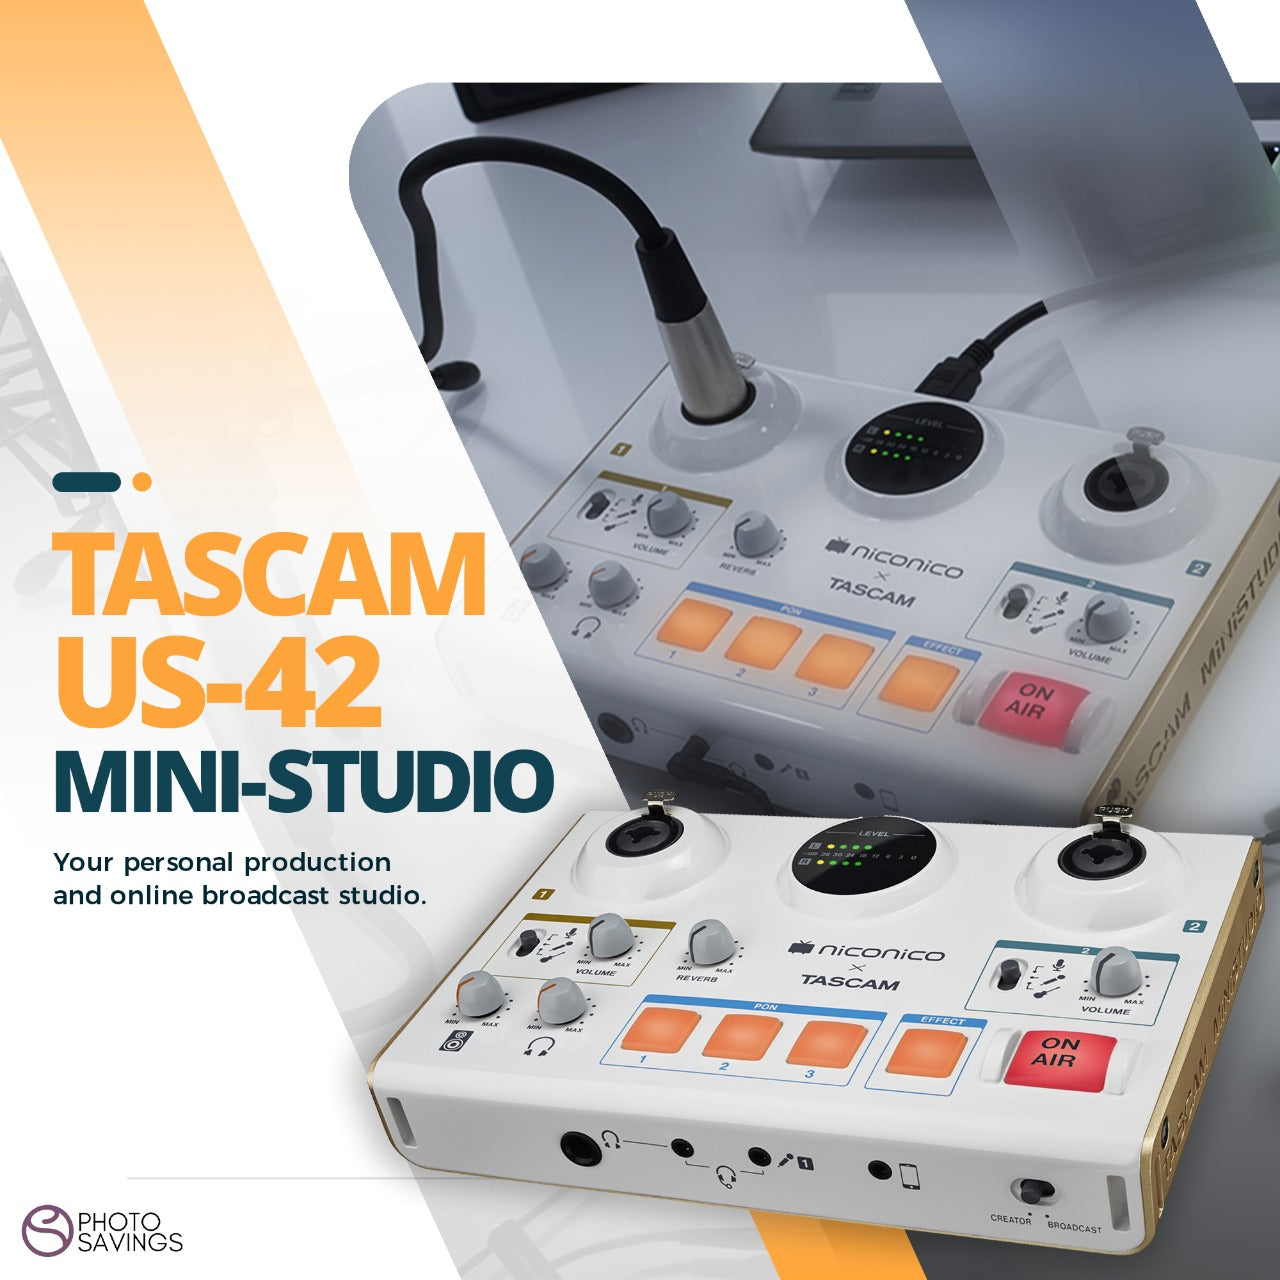 PHOTO SAVINGS EXCLUSIVE: Tascam MiniStudio Creator USB Podcasting Broadcast Interface